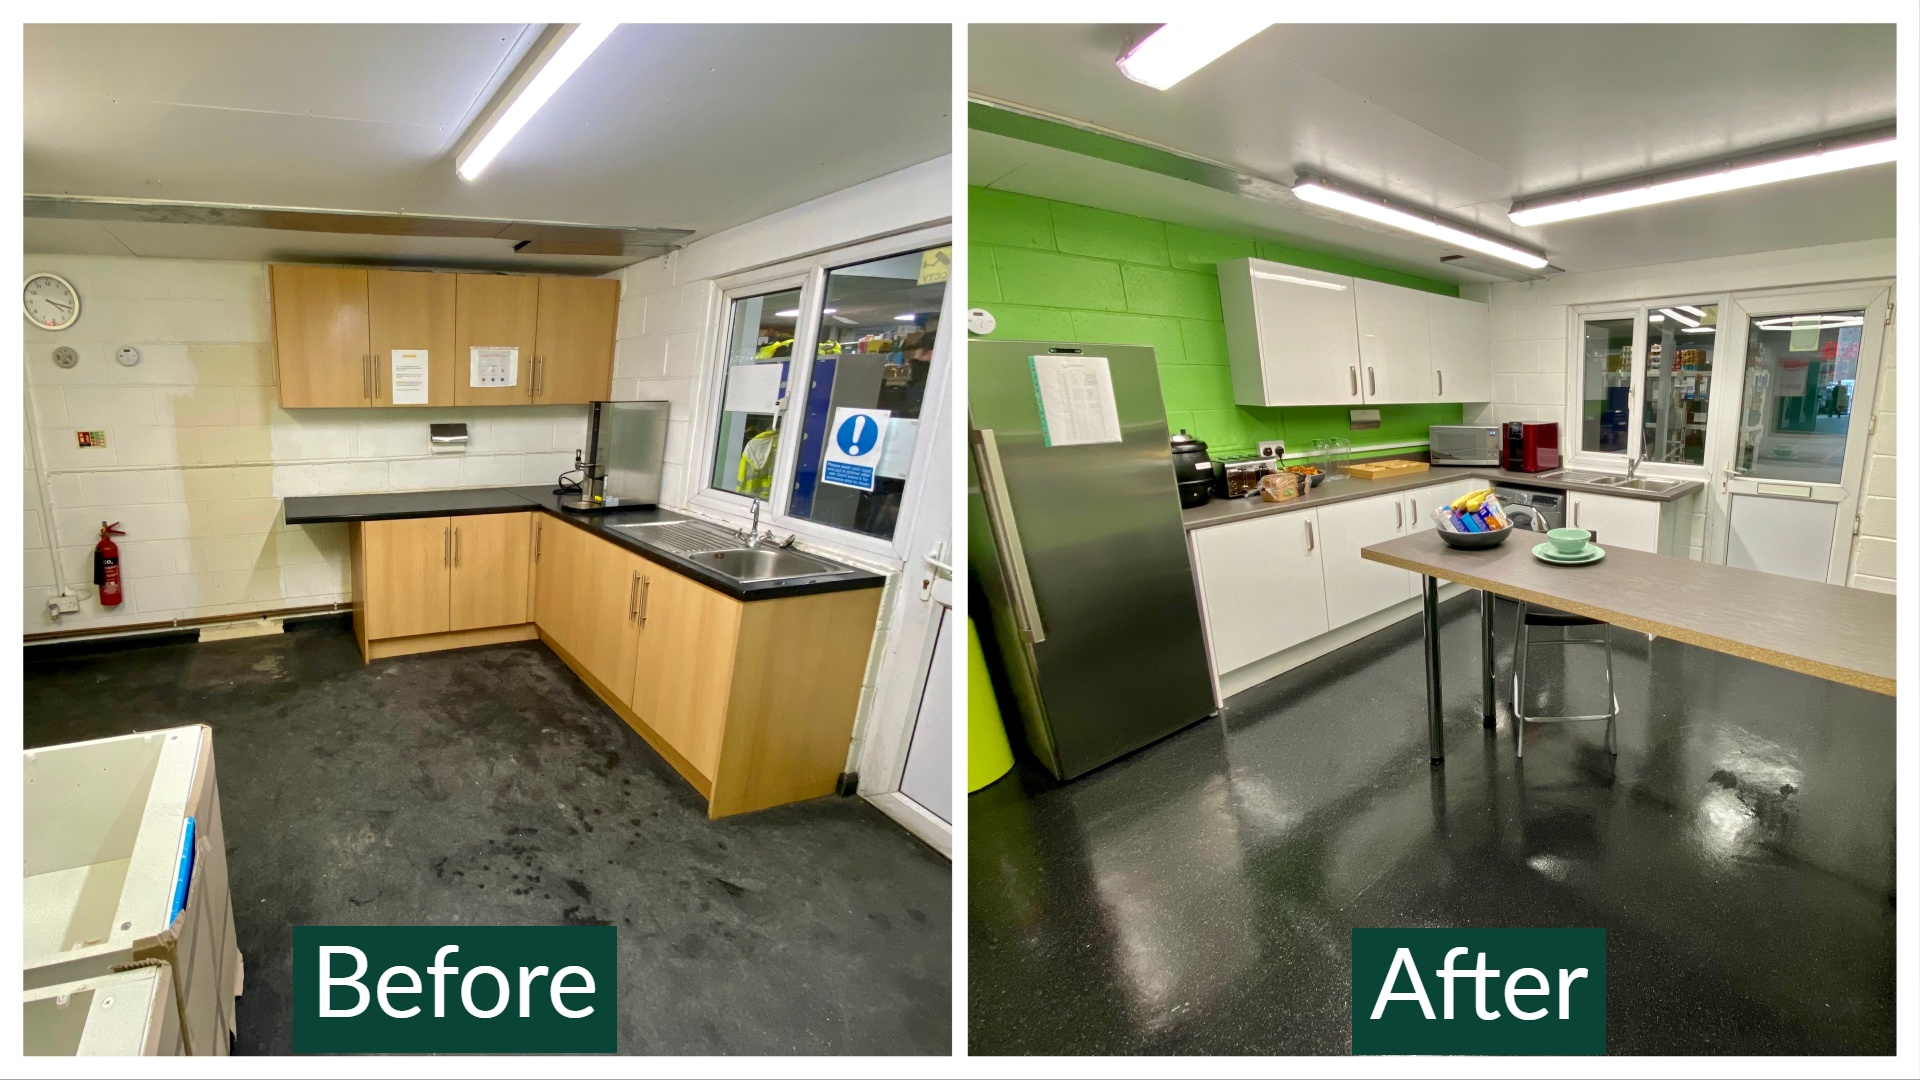 A before and after refurbishment of a kitchen